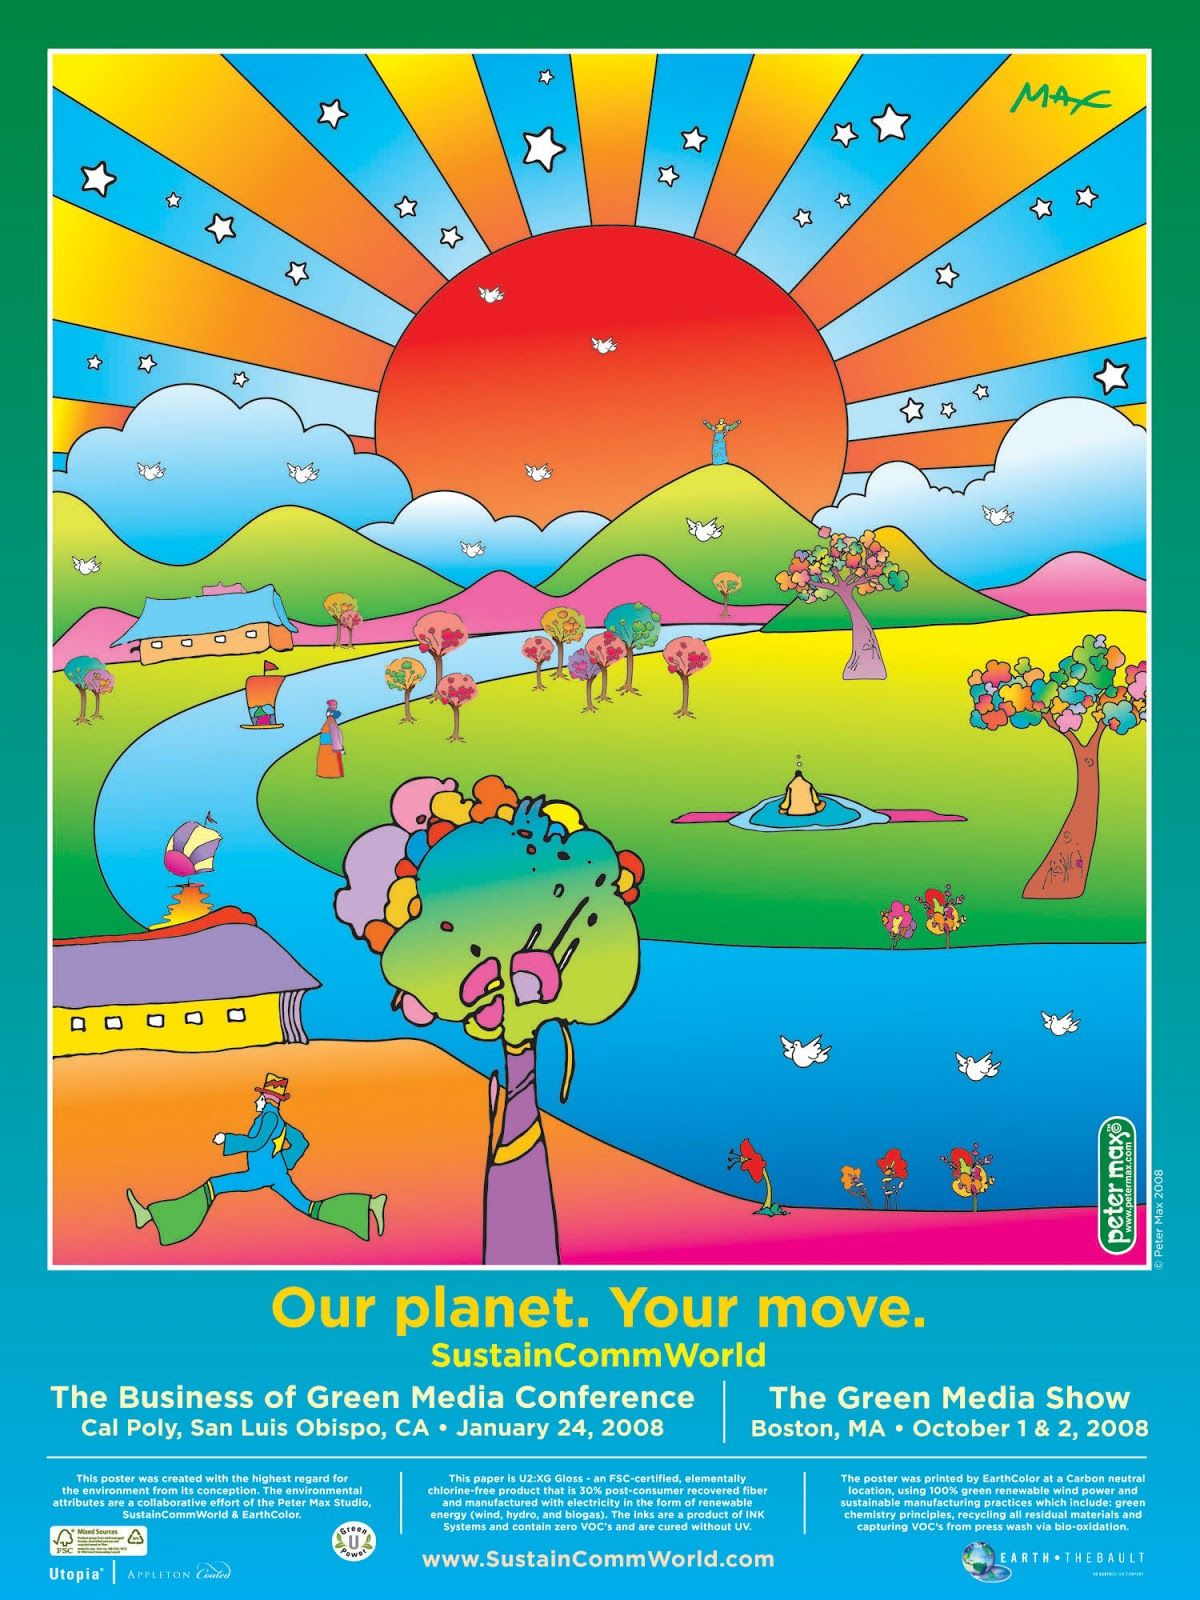 Our your move official poster by peter max poul